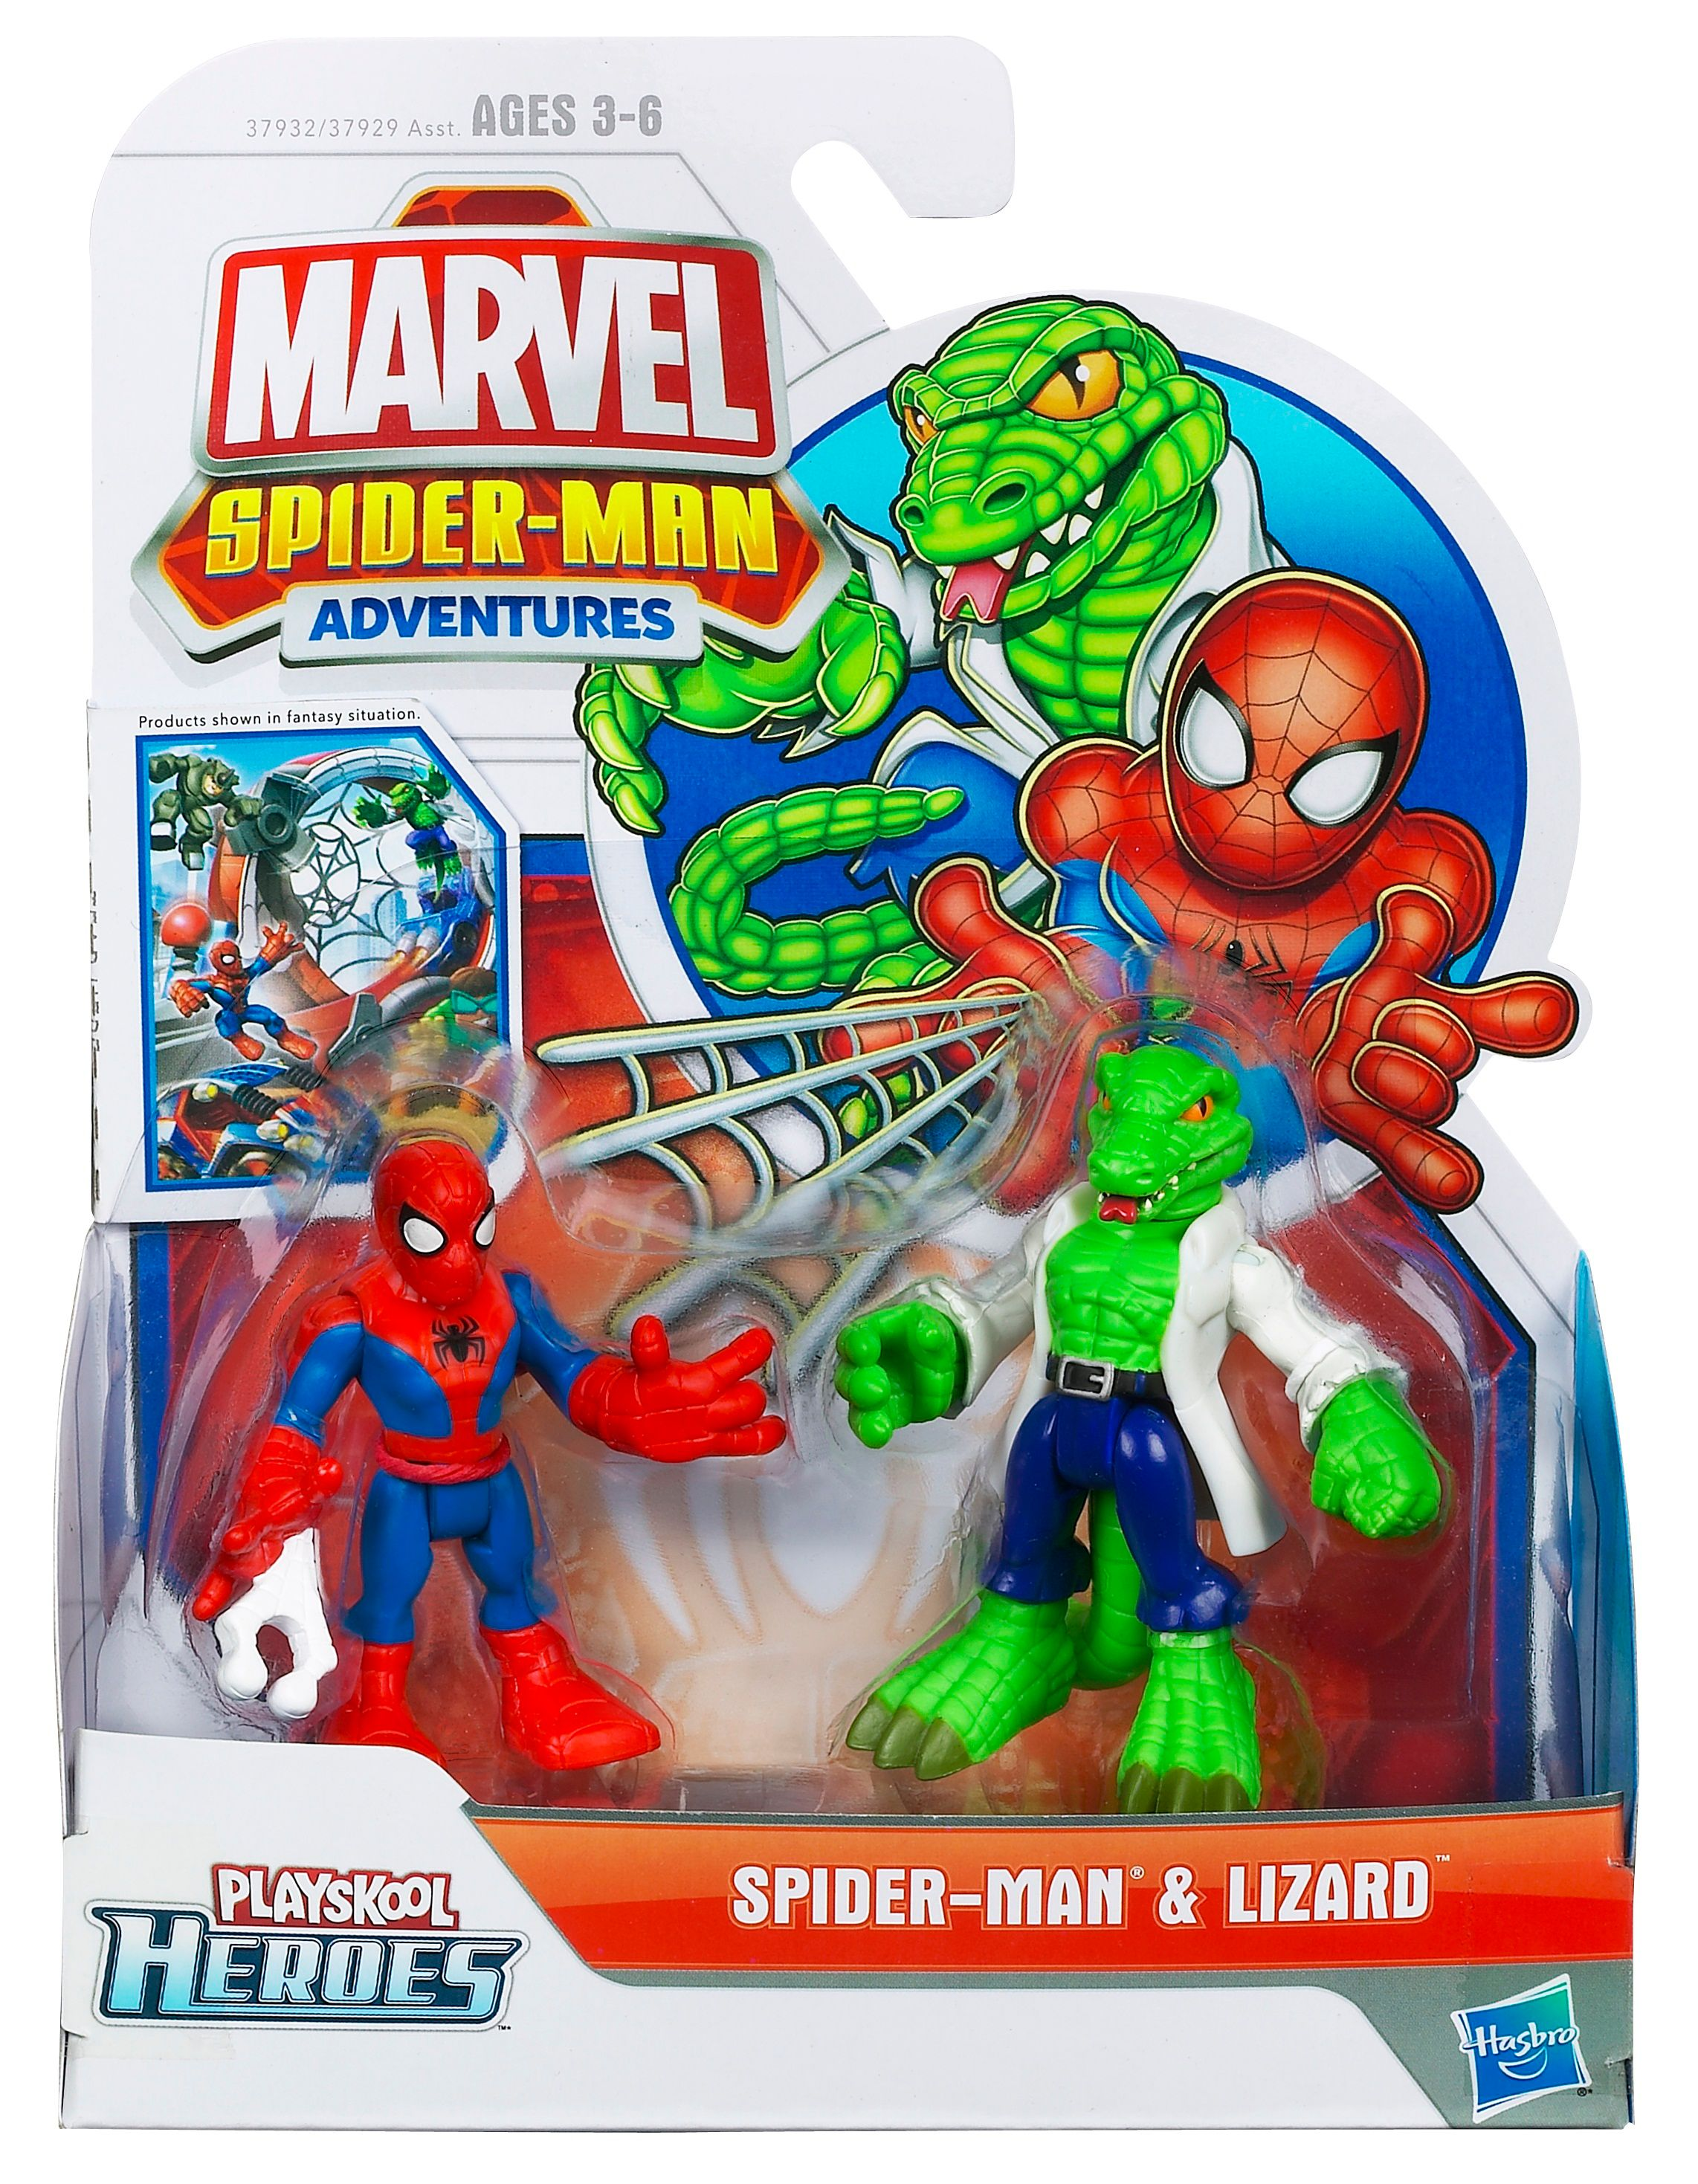 Spiderman & Lizard Playskool Heroes